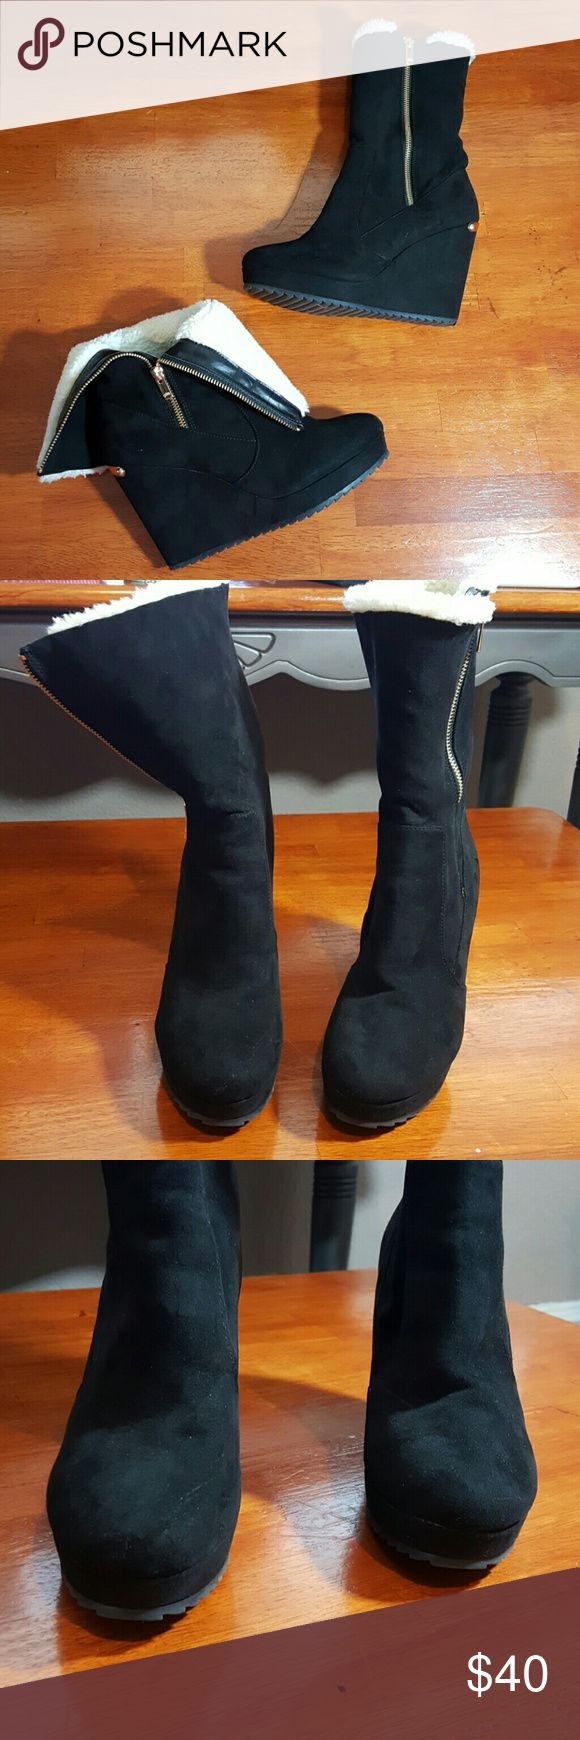 Juicy couture boots Black suede..white furry inside...wedged..gold logo on back of boots..looks good but does have a small crease on front right shoe... Juicy Couture Shoes Heeled Boots